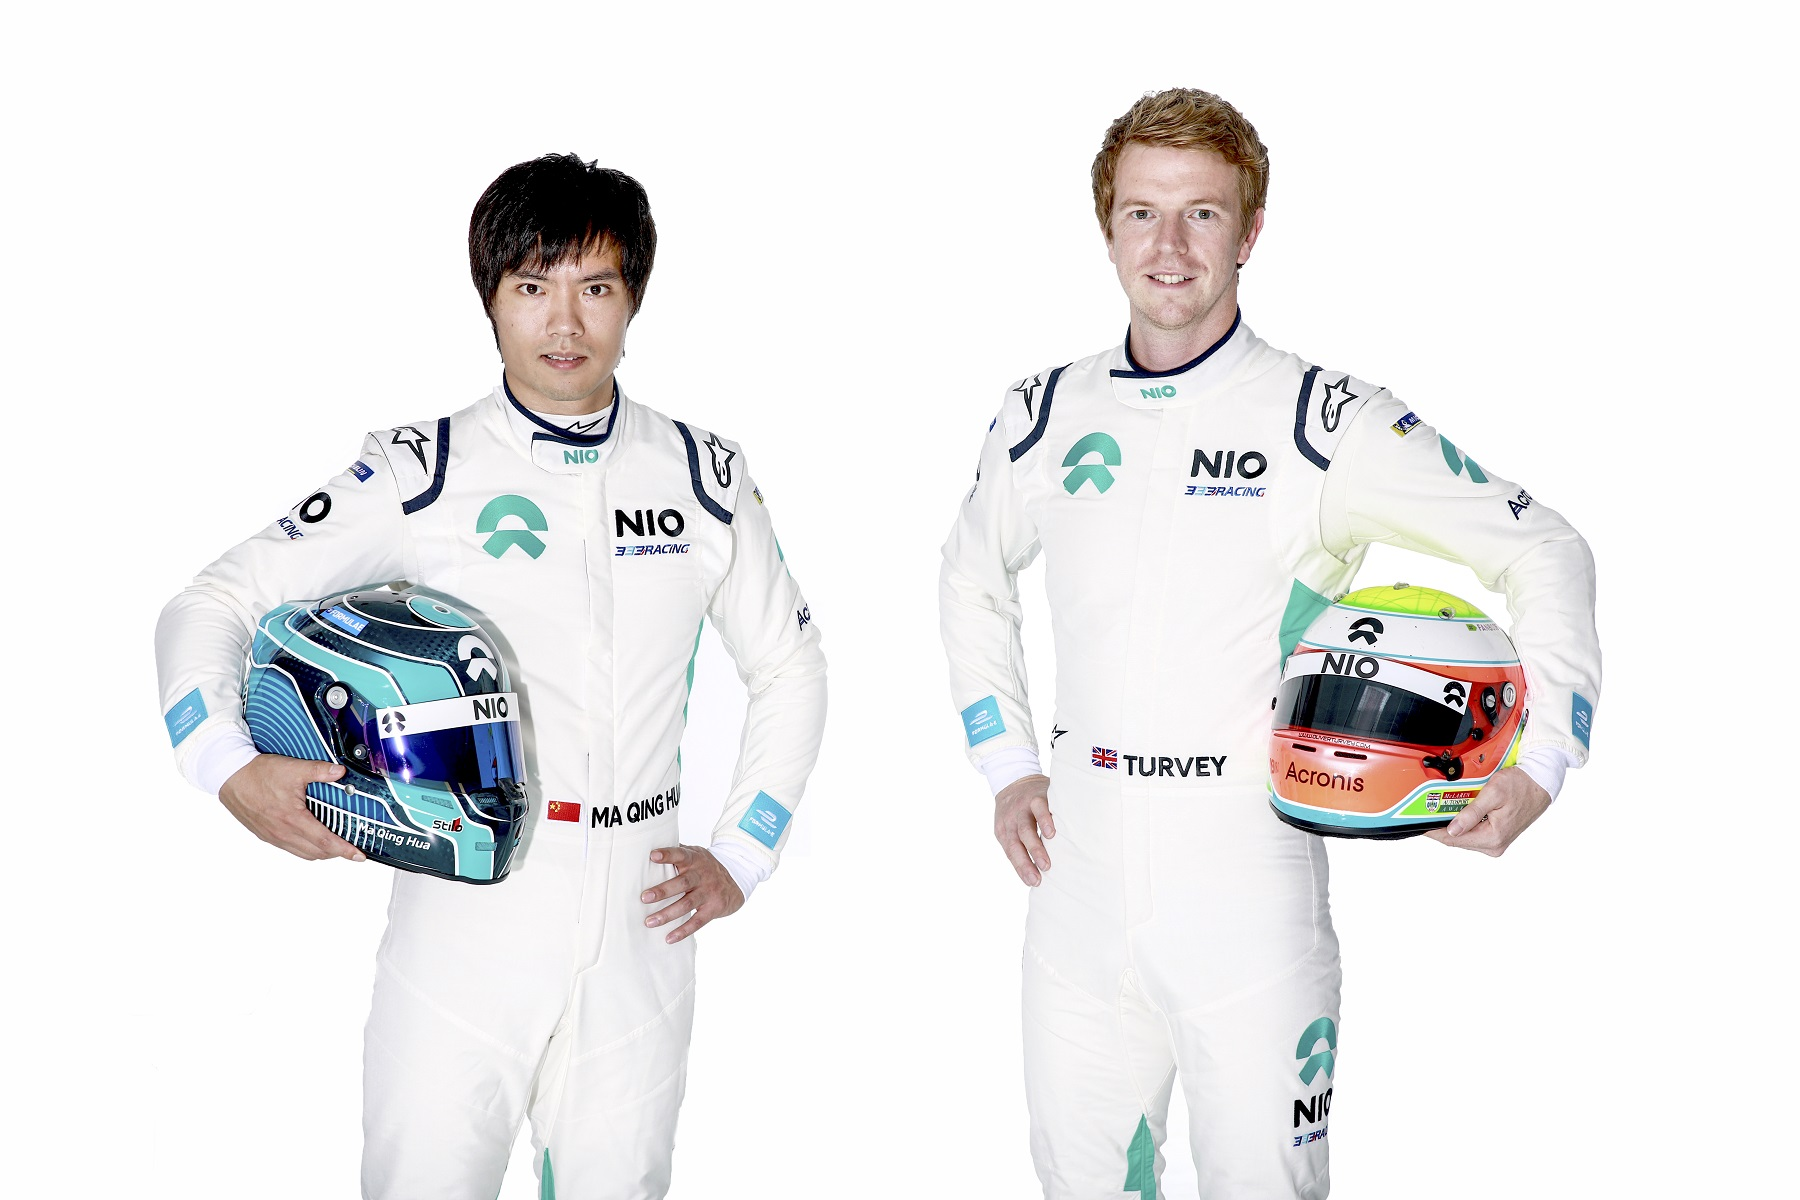 Nio 333 FE Team drivers Ma Qing Hua Oliver Turvey in Racing Overalls with helmets.jpg